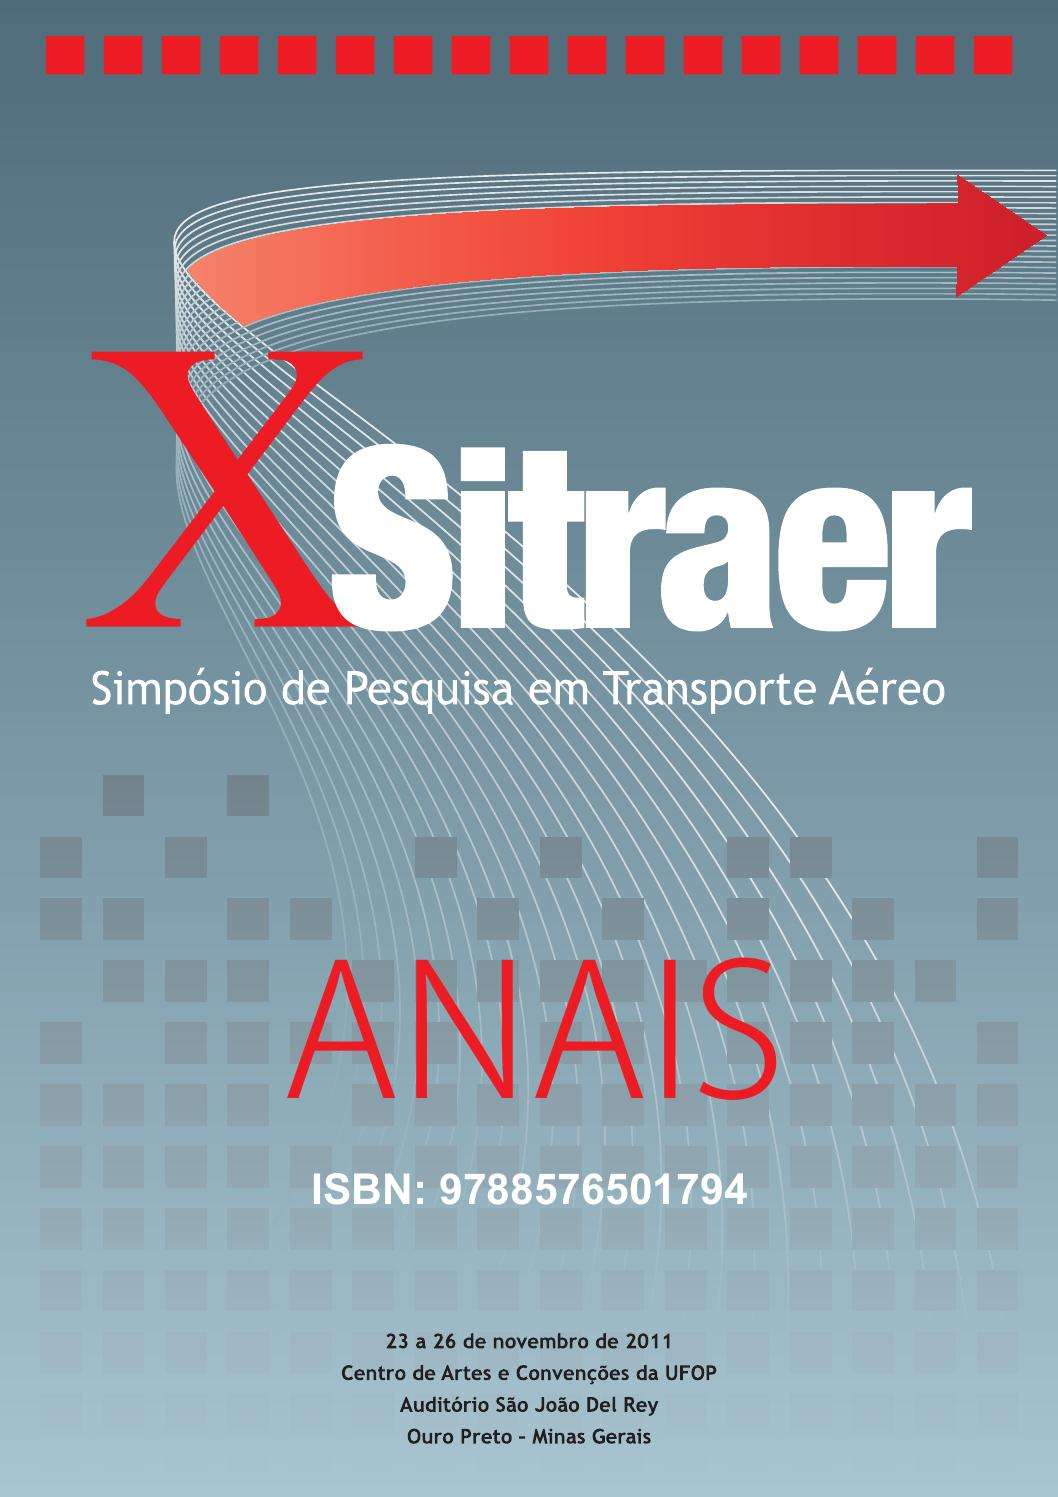 Anais x sitraer 2011 ouro preto mg ufop by erivelton pires anais x sitraer 2011 ouro preto mg ufop by erivelton pires guedes issuu fandeluxe Image collections